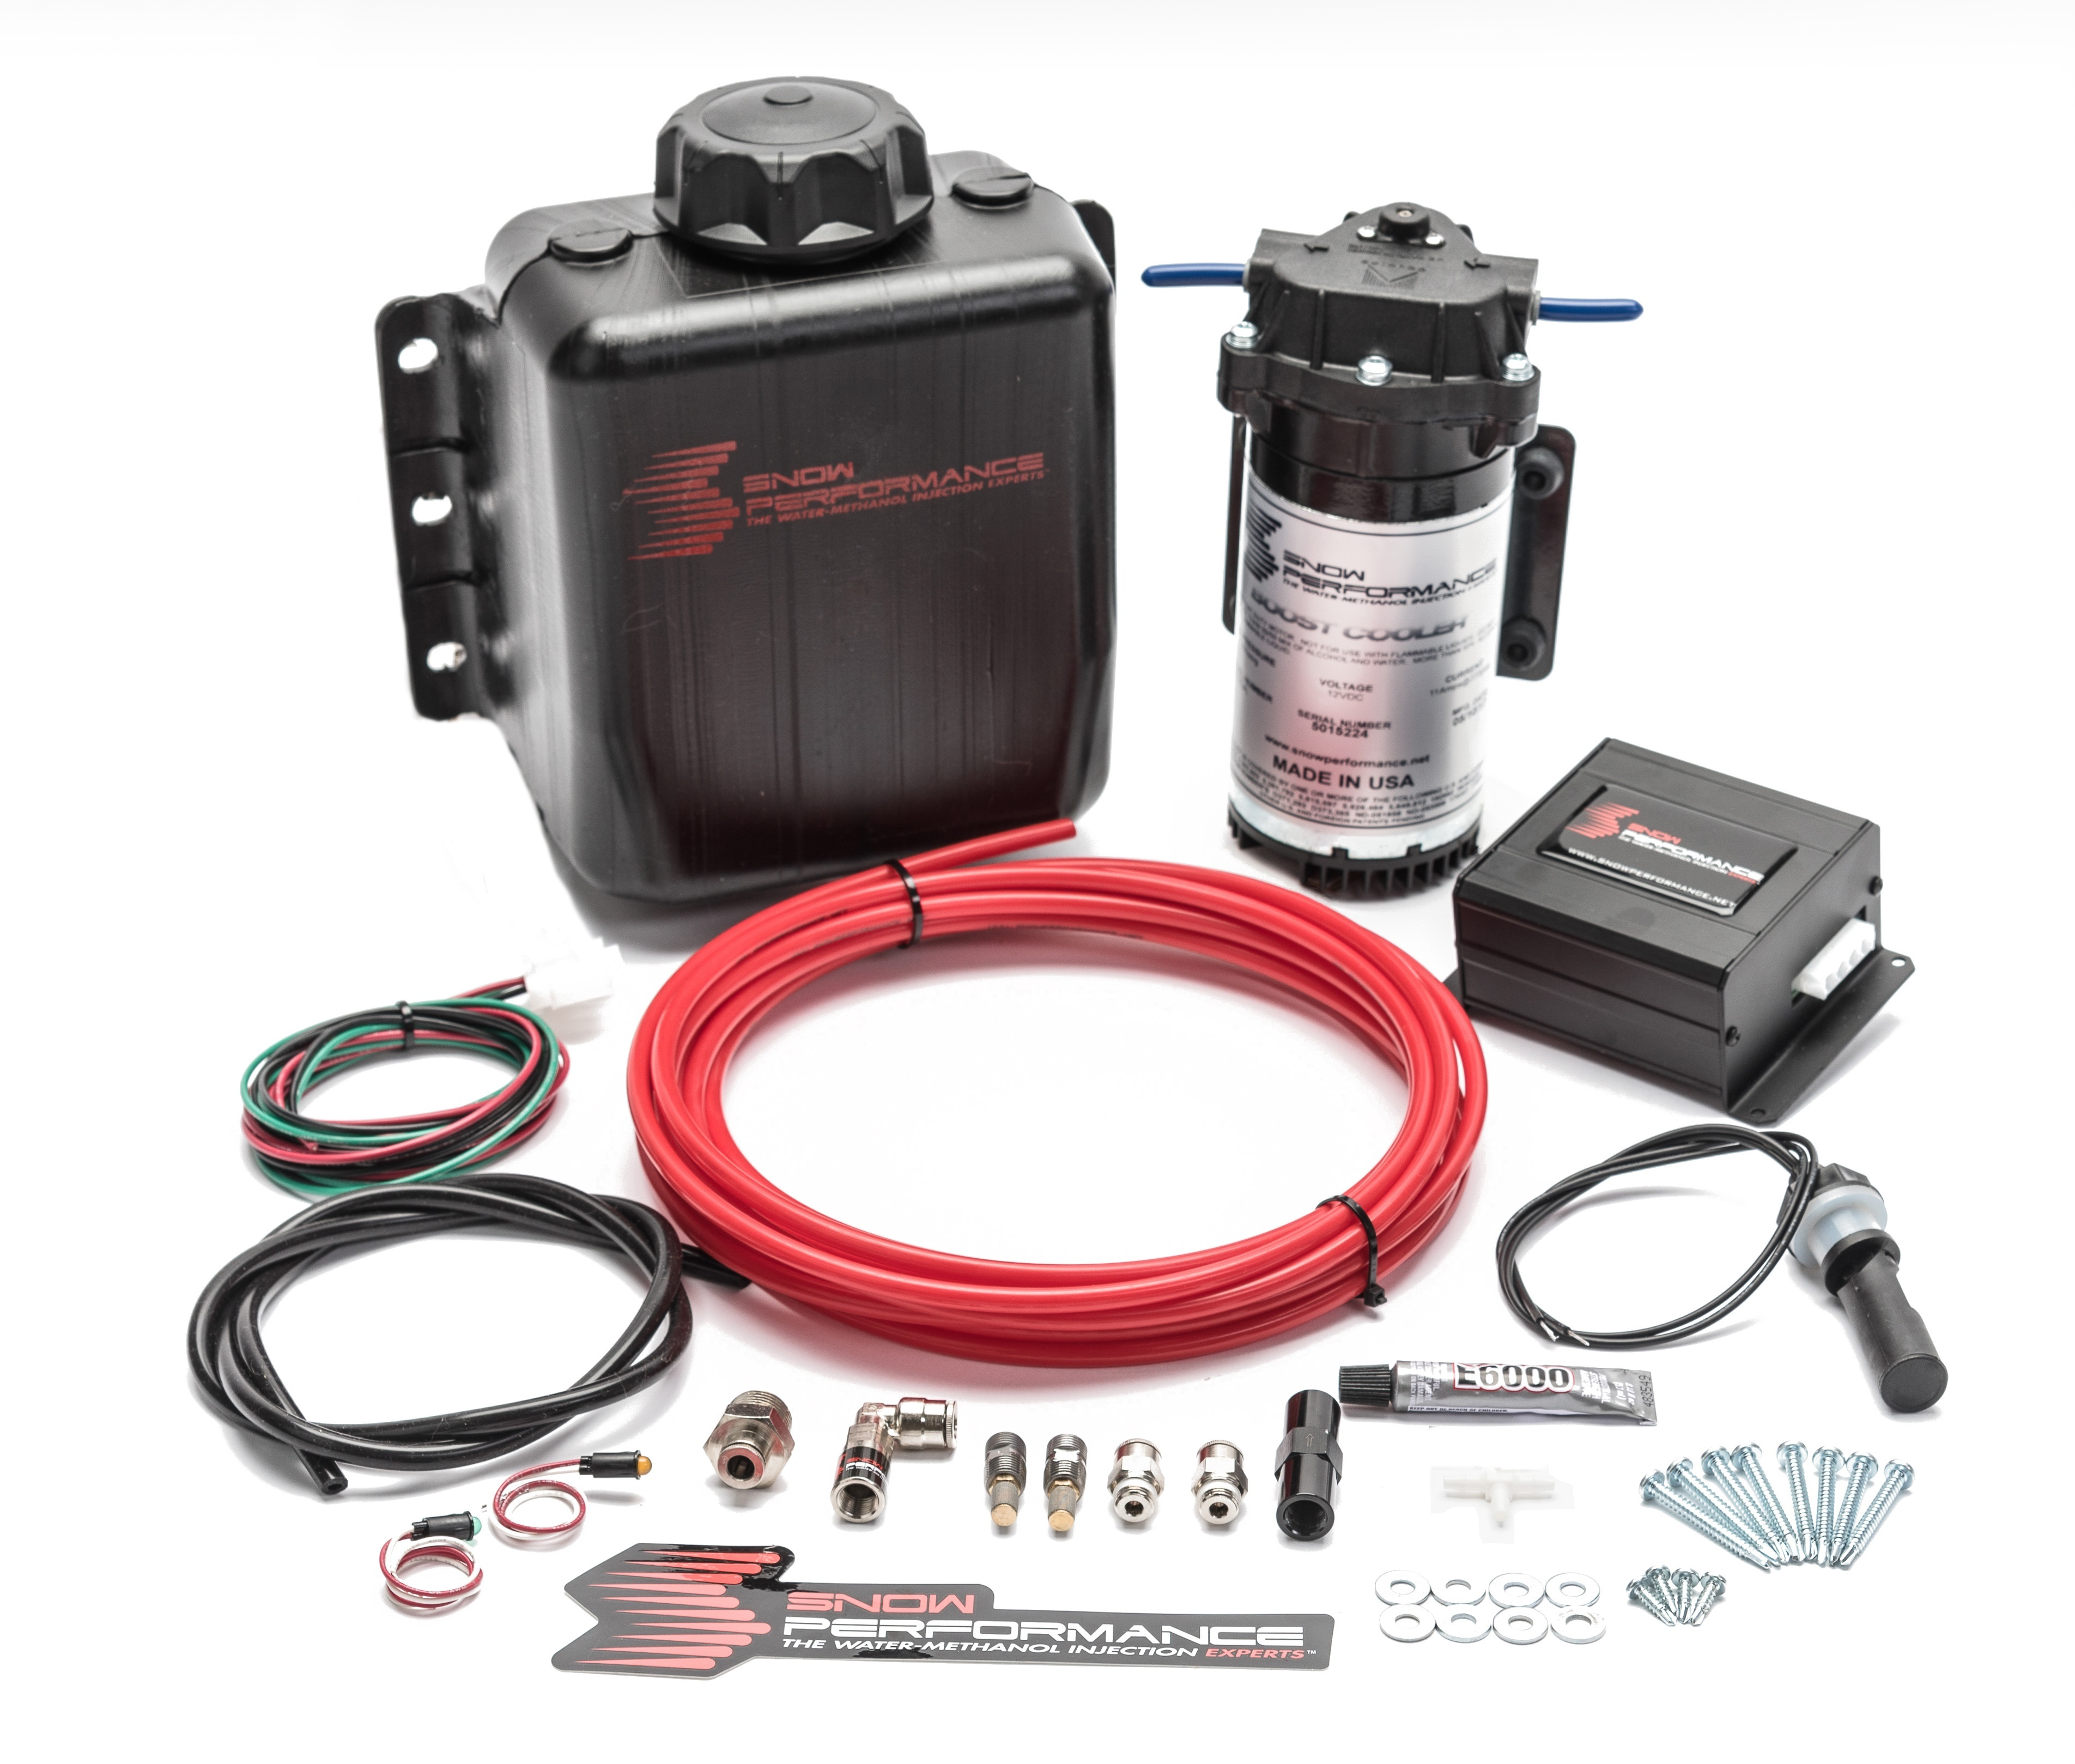 Snow Performance Water/Methanol Kit Gas Stage II Boost Controled